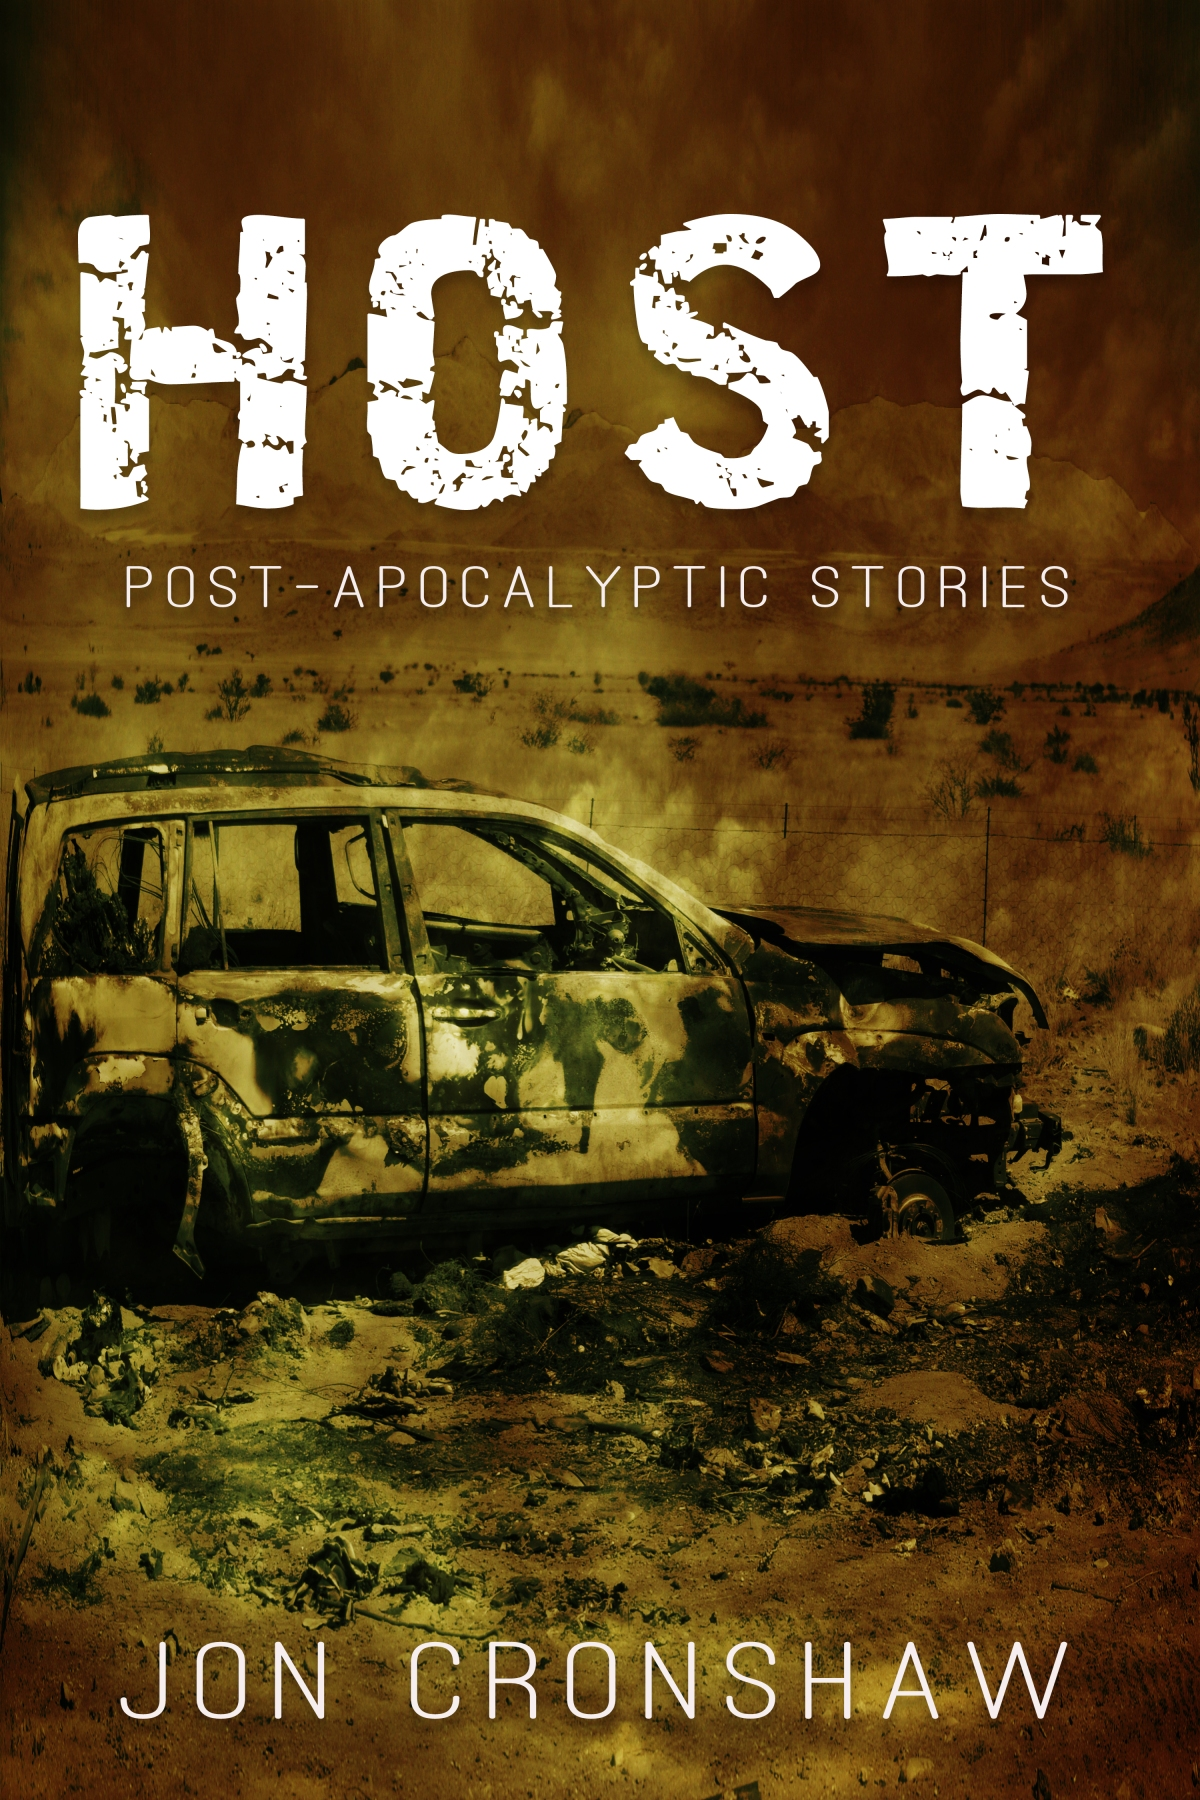 Announcing: Host and Other Post-Apocalyptic Stories